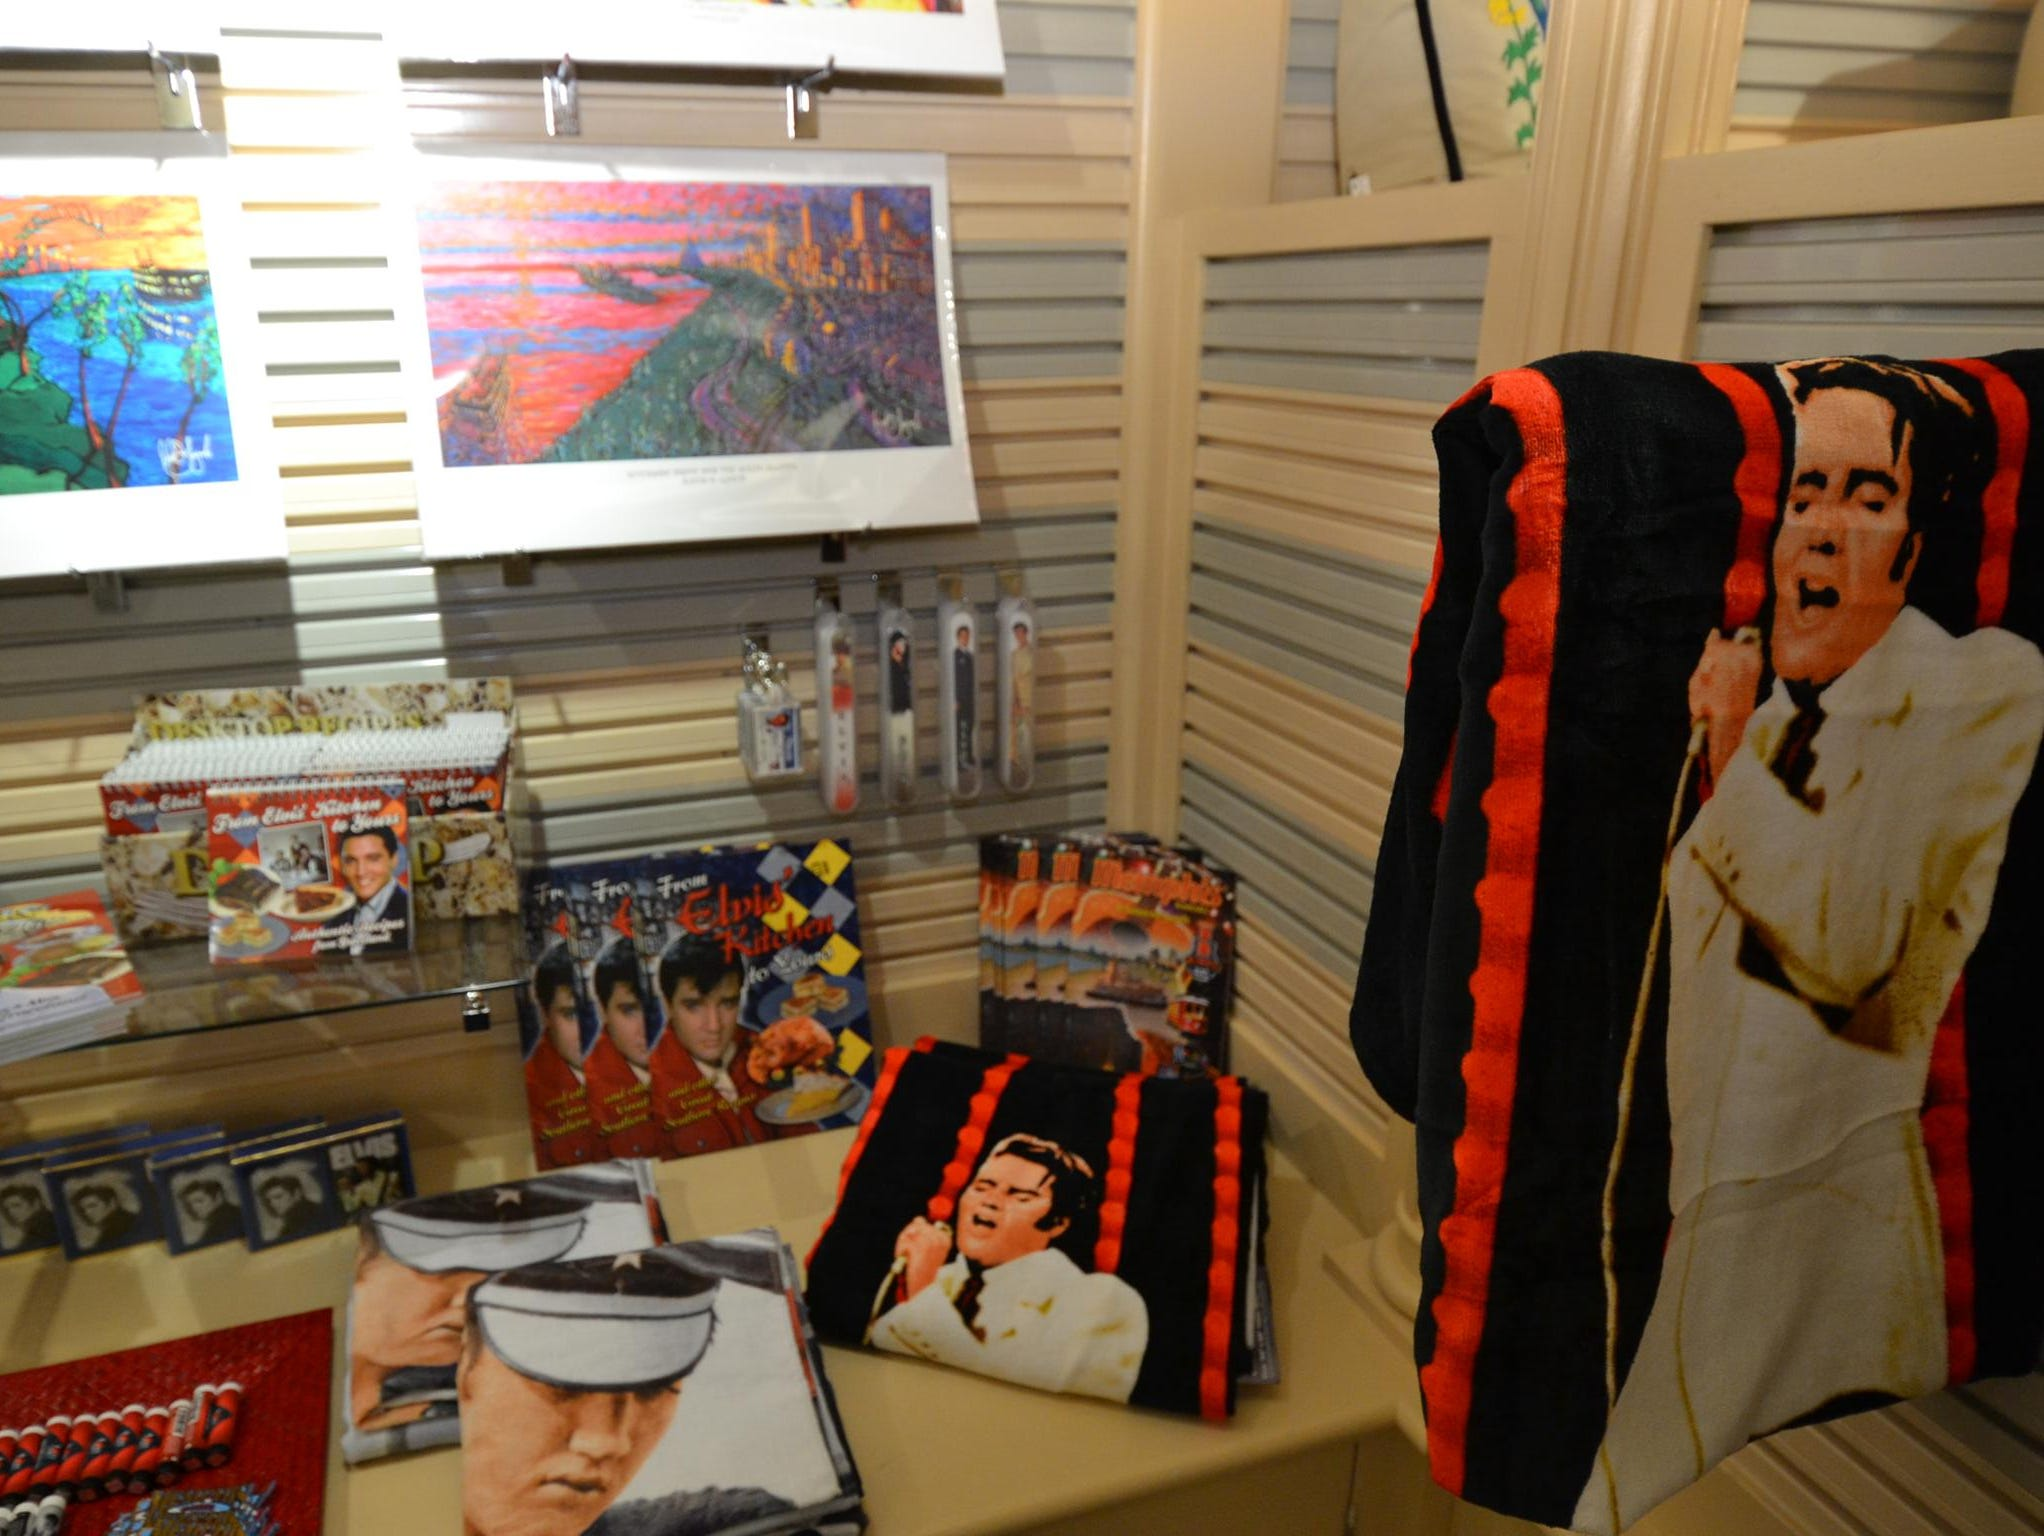 Elvis Presley items for sale at the A.Q. Emporium. The American Queen Steamboat Company has partnered with Presley Enterprises to host an Elvis cruise.